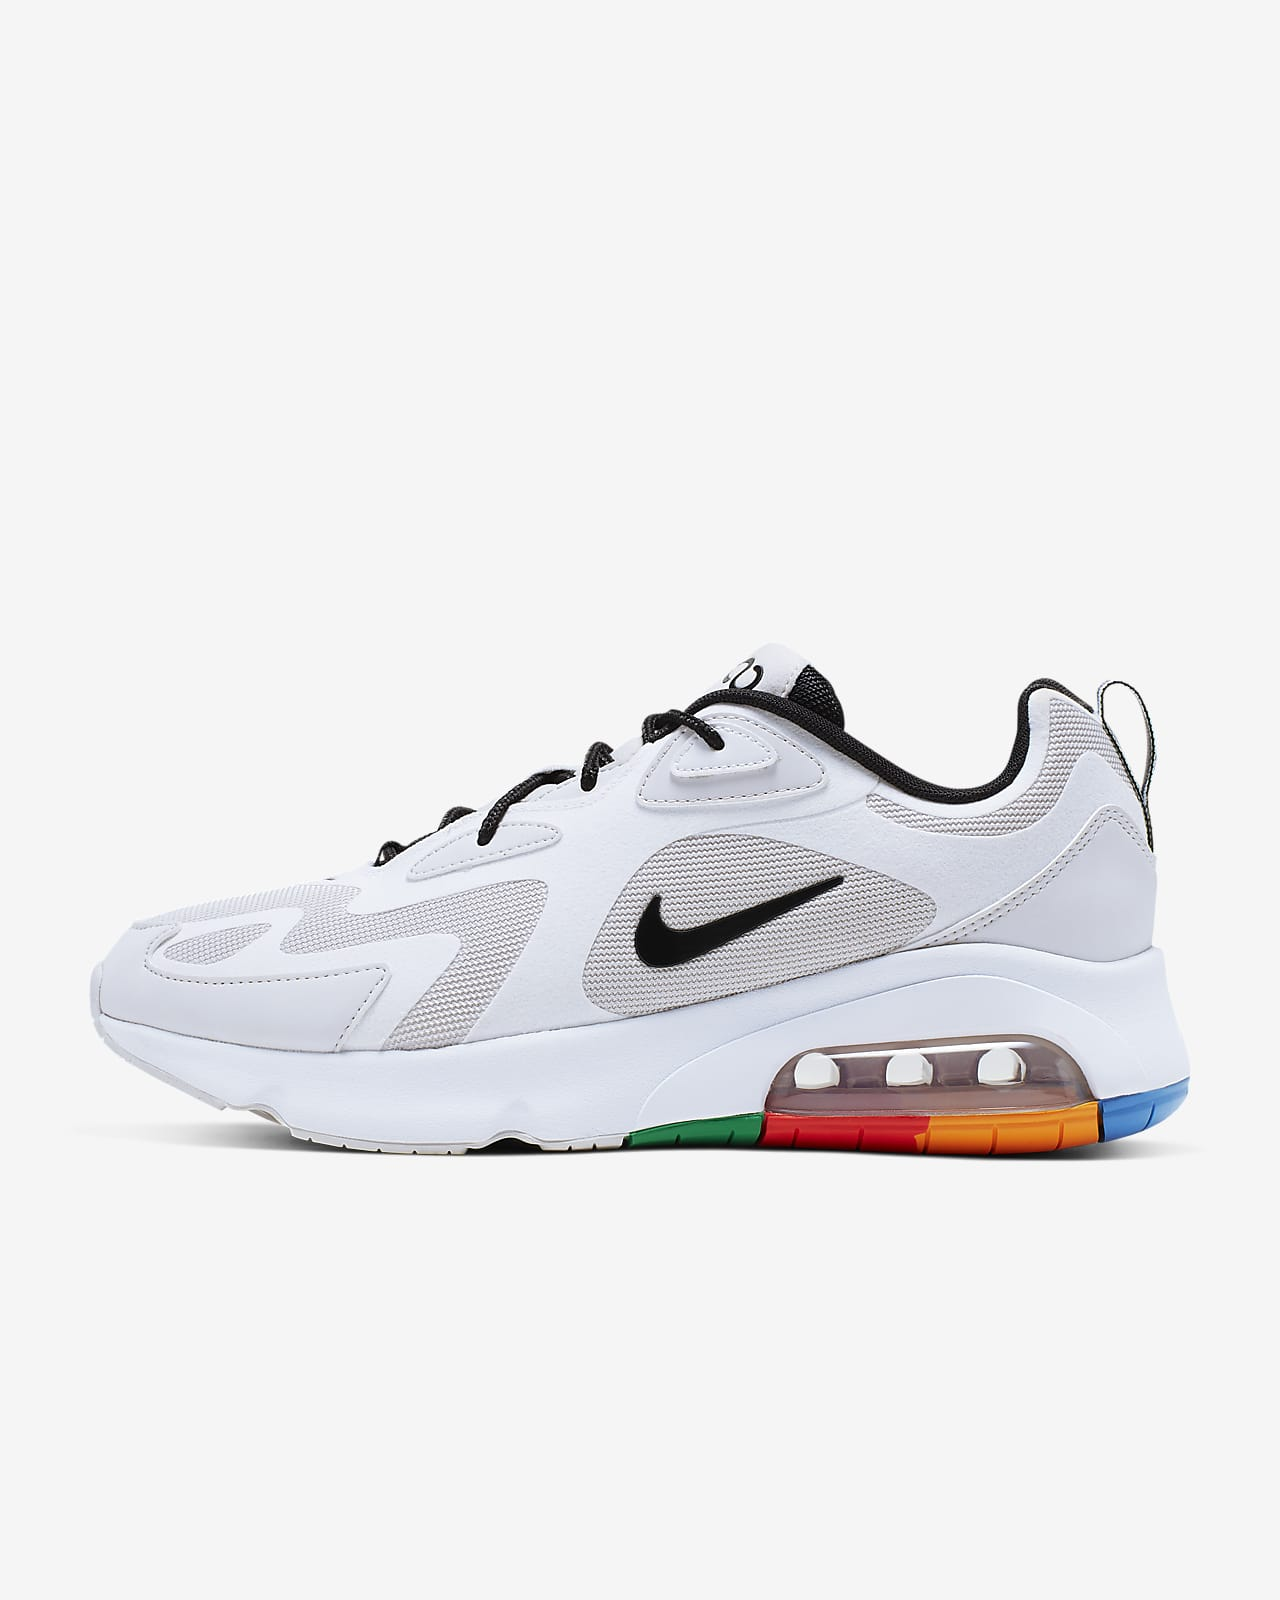 Nike Air Max 200 (1996 World Stage) Men's Shoe